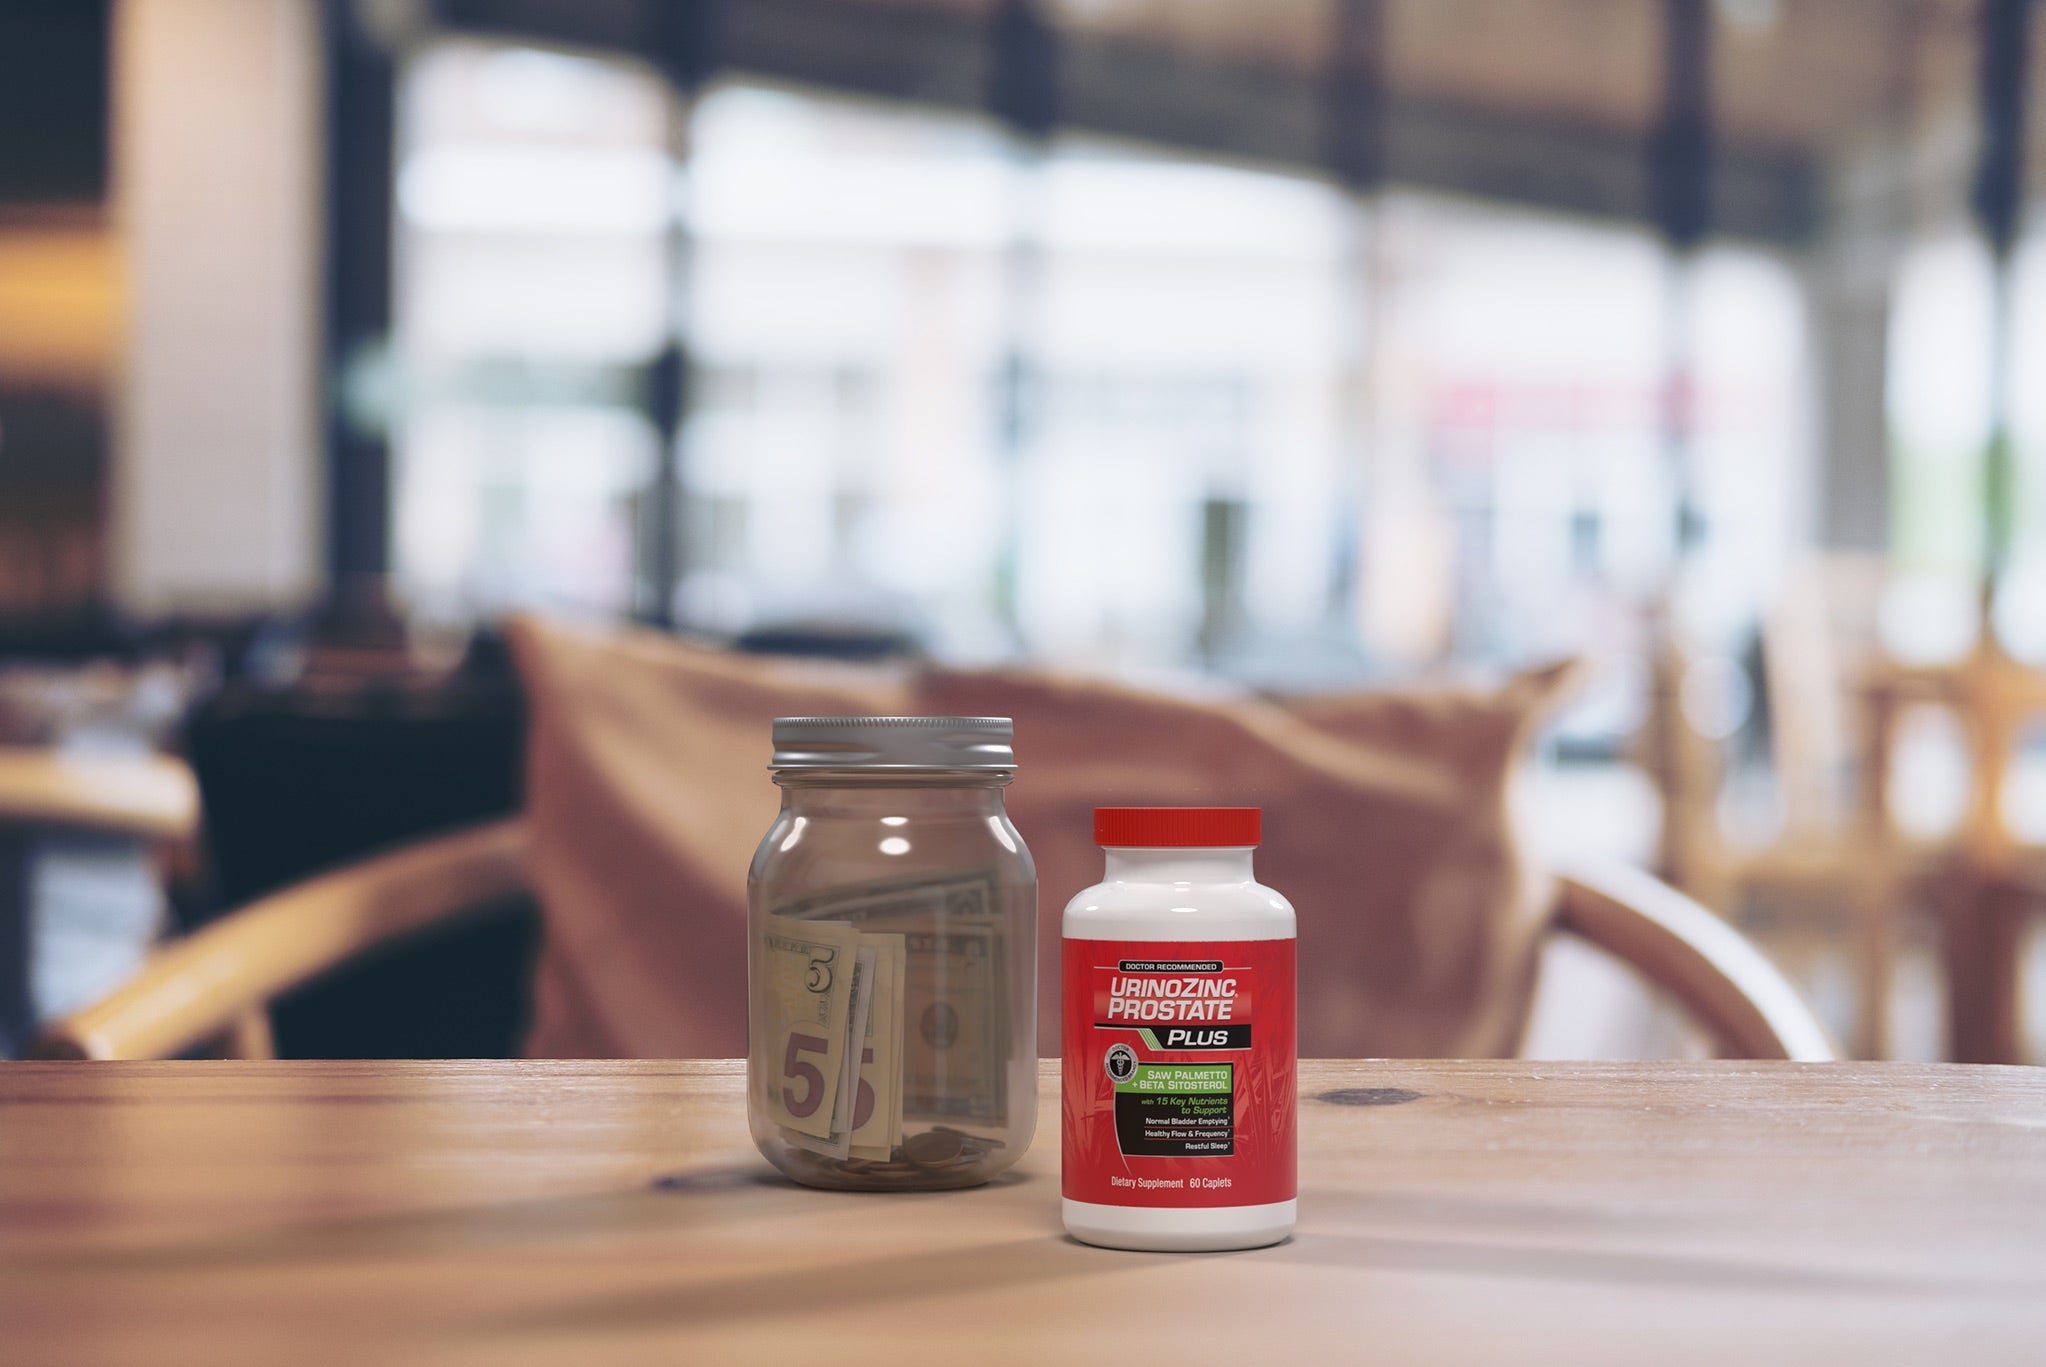 a photo of a bottle of UrinoZinc Plus sitting on a table next to a glass jar that contains money